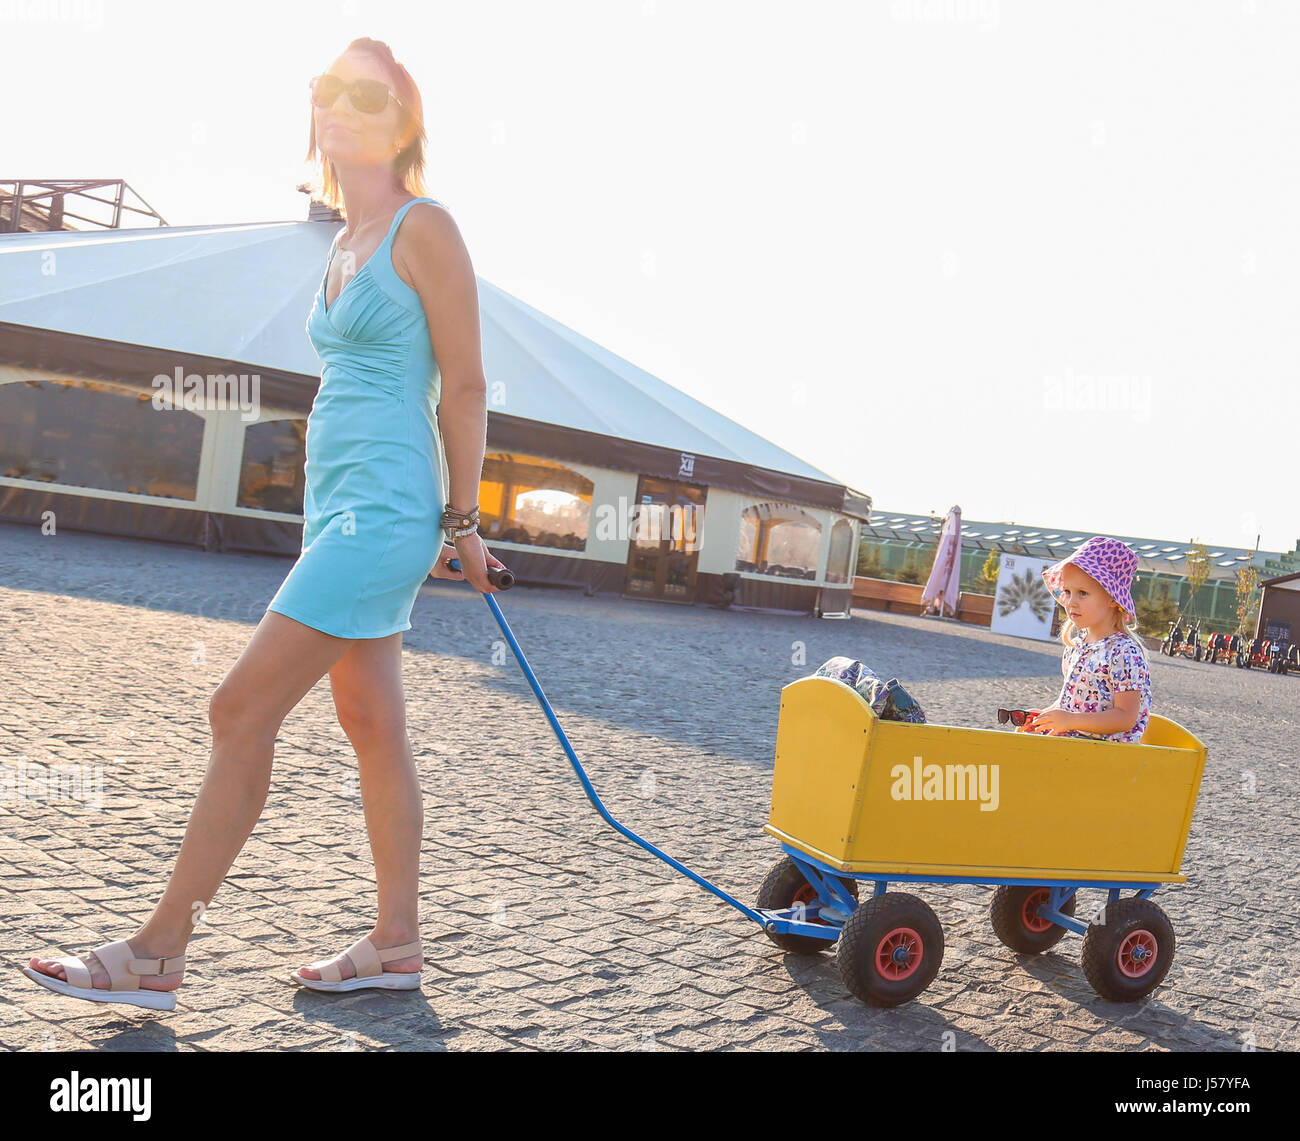 a-mother-carries-a-daughter-in-a-cart-co